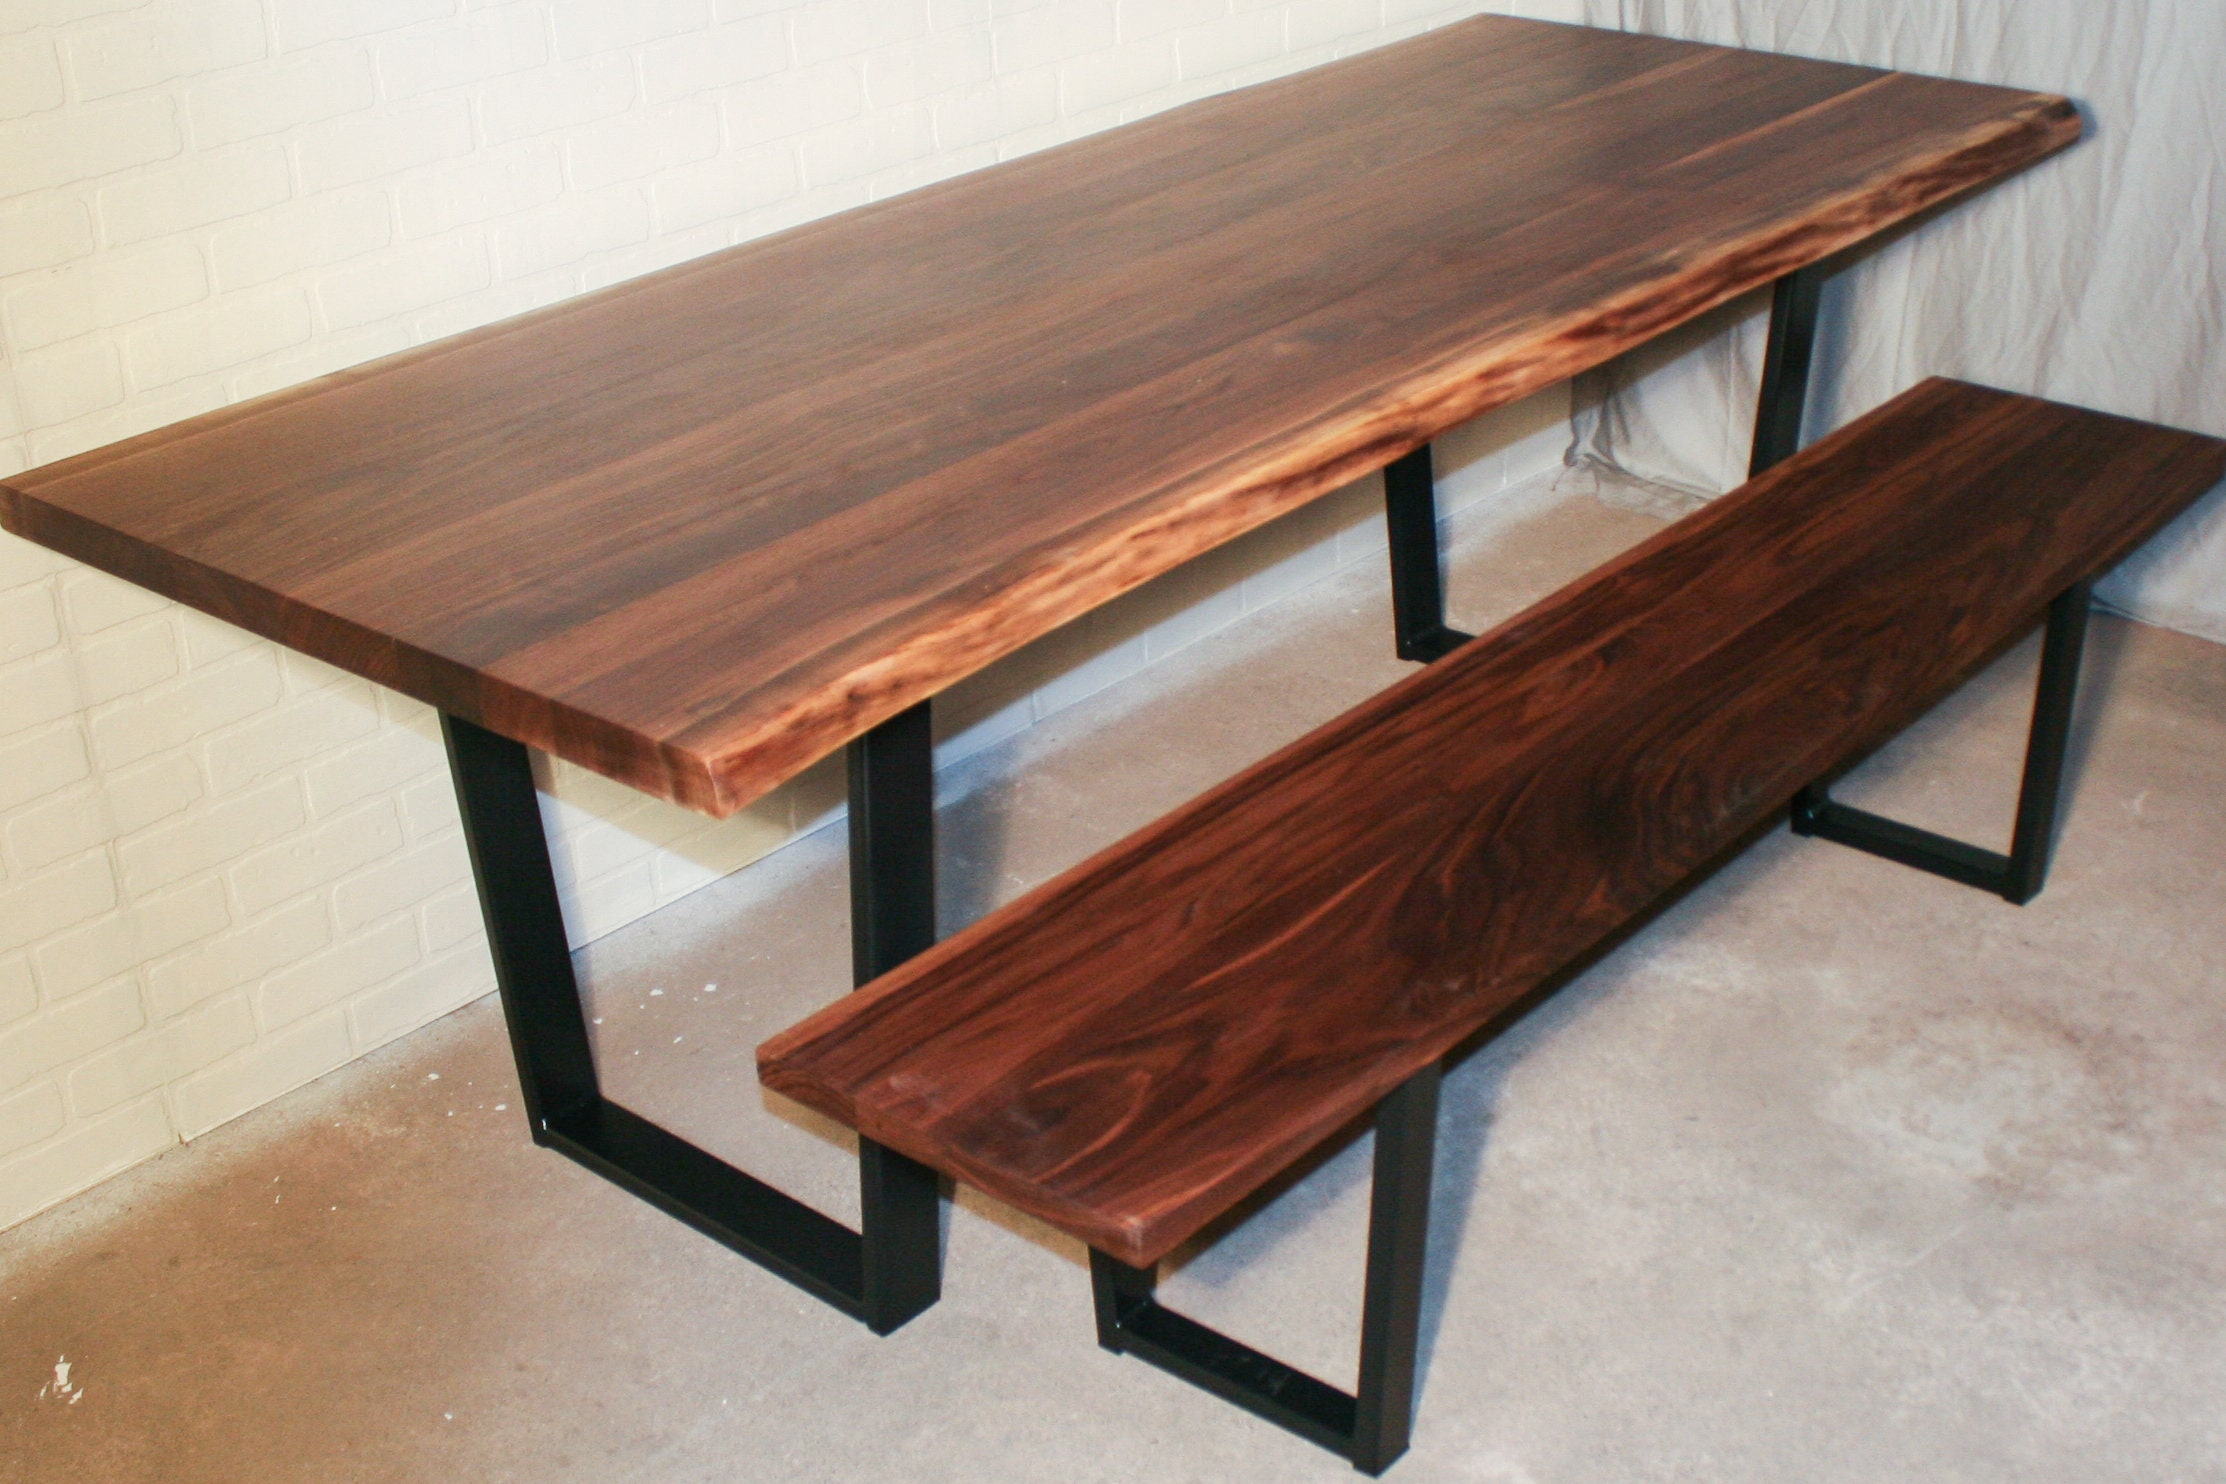 Custom Live Edge Walnut Dining Table Set - Custom Kitchen Table with Bench  on Steel Legs - Farmhouse Kitchen Dining Set